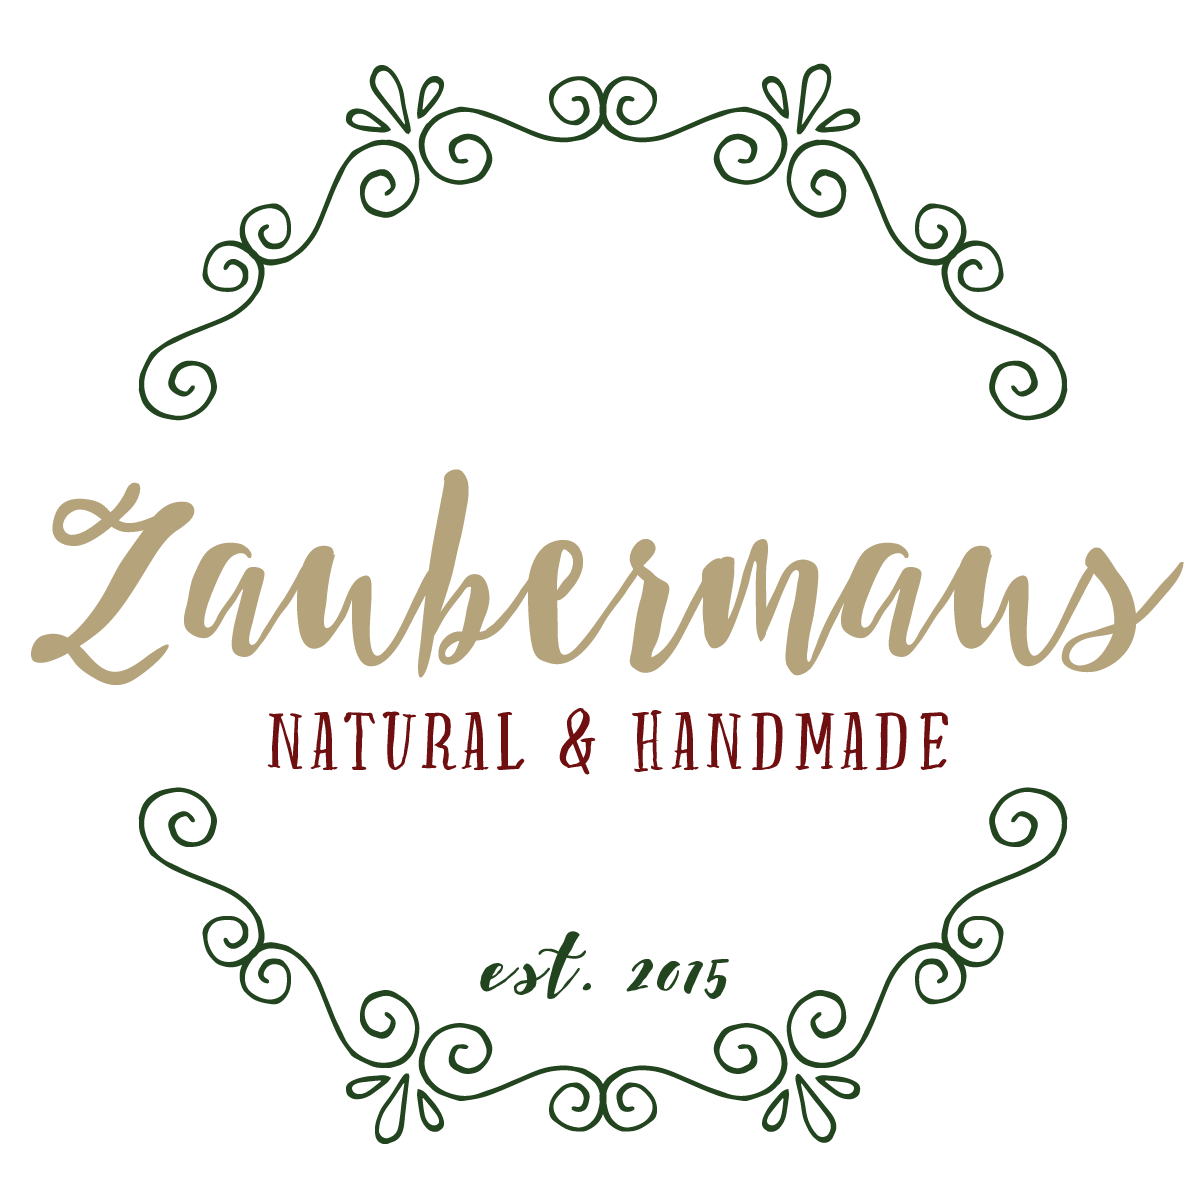 Zaubermaus | Handmade Body Products